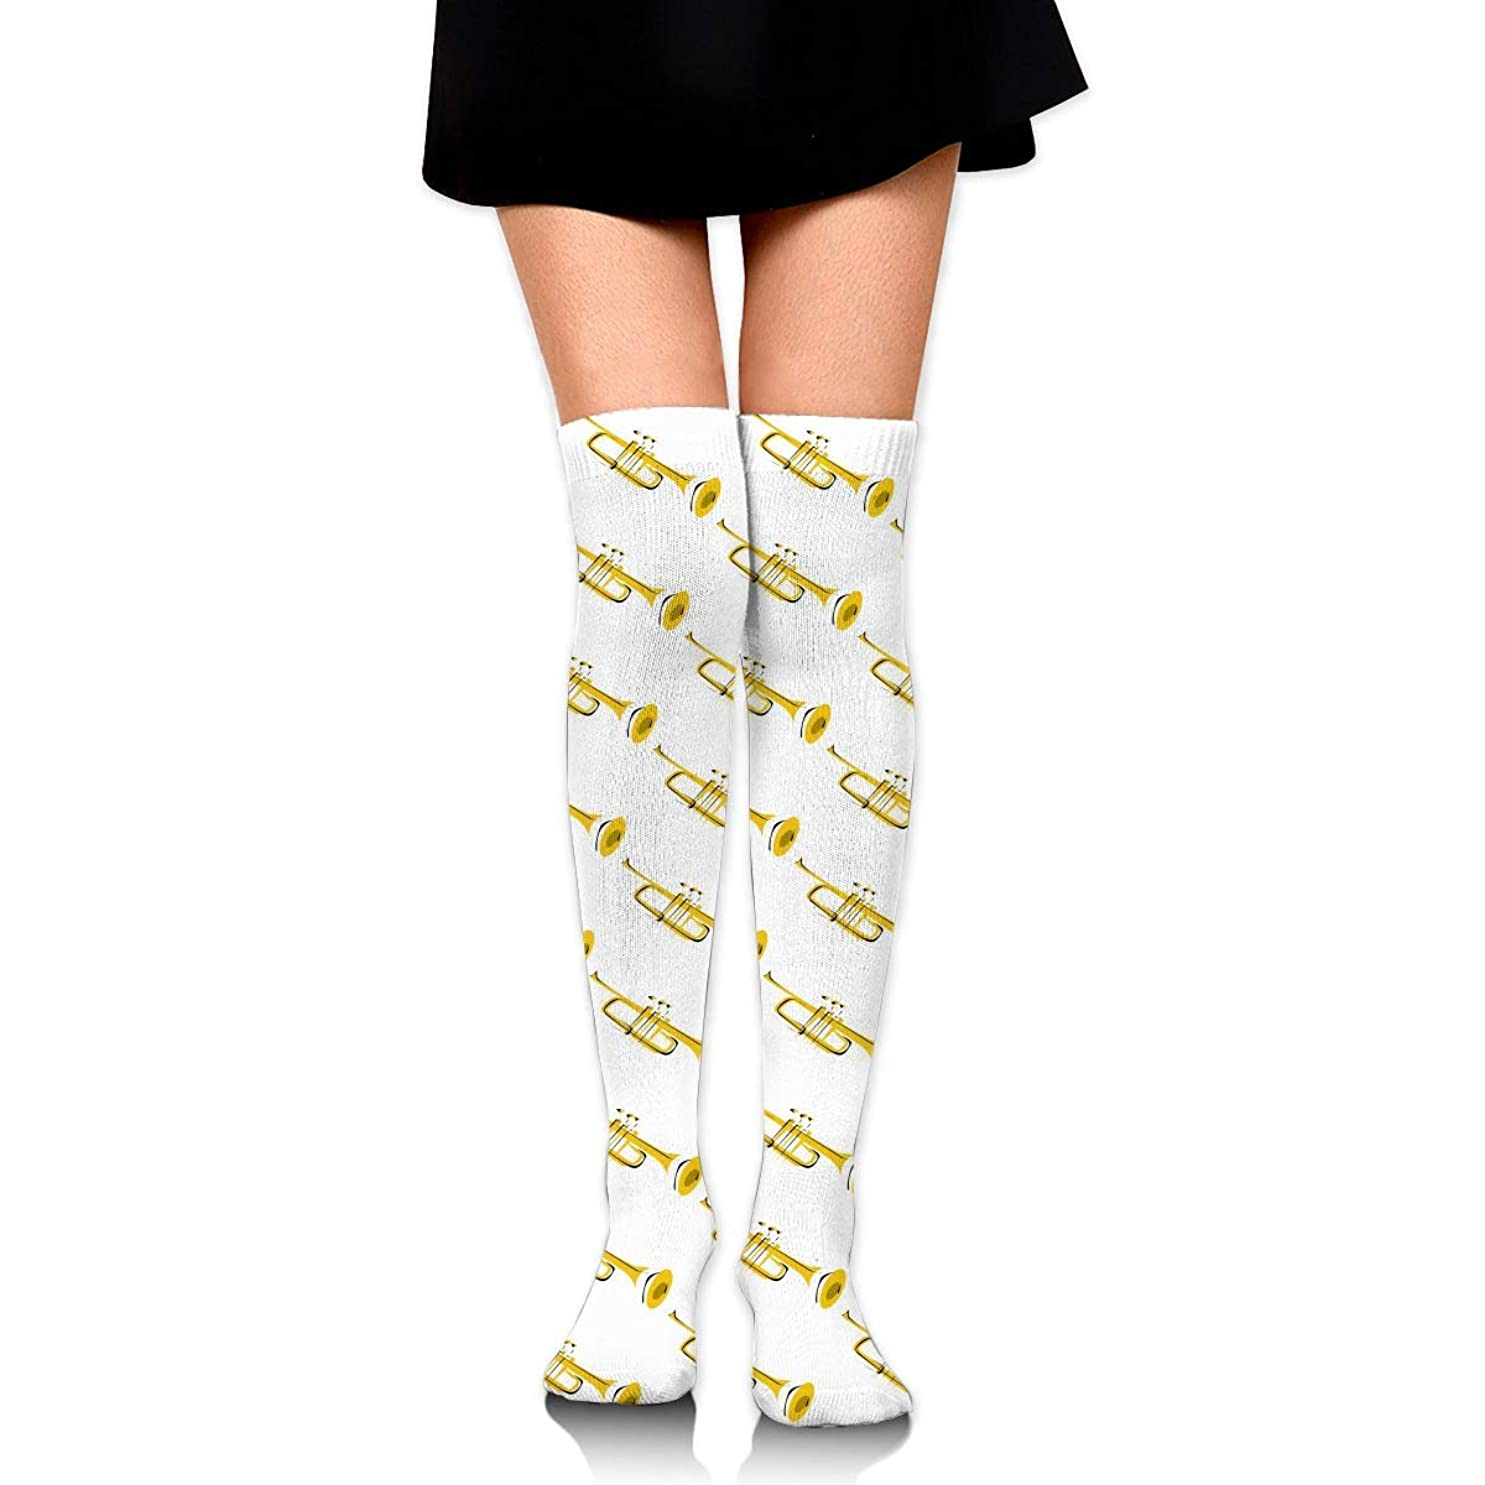 費用古いトマトMKLOS 通気性 圧縮ソックス Breathable Extra Long Cotton Mid Thigh High Golden Trumpet Exotic Psychedelic Print Compression High Tube Thigh Boot Stockings Knee High Women Girl